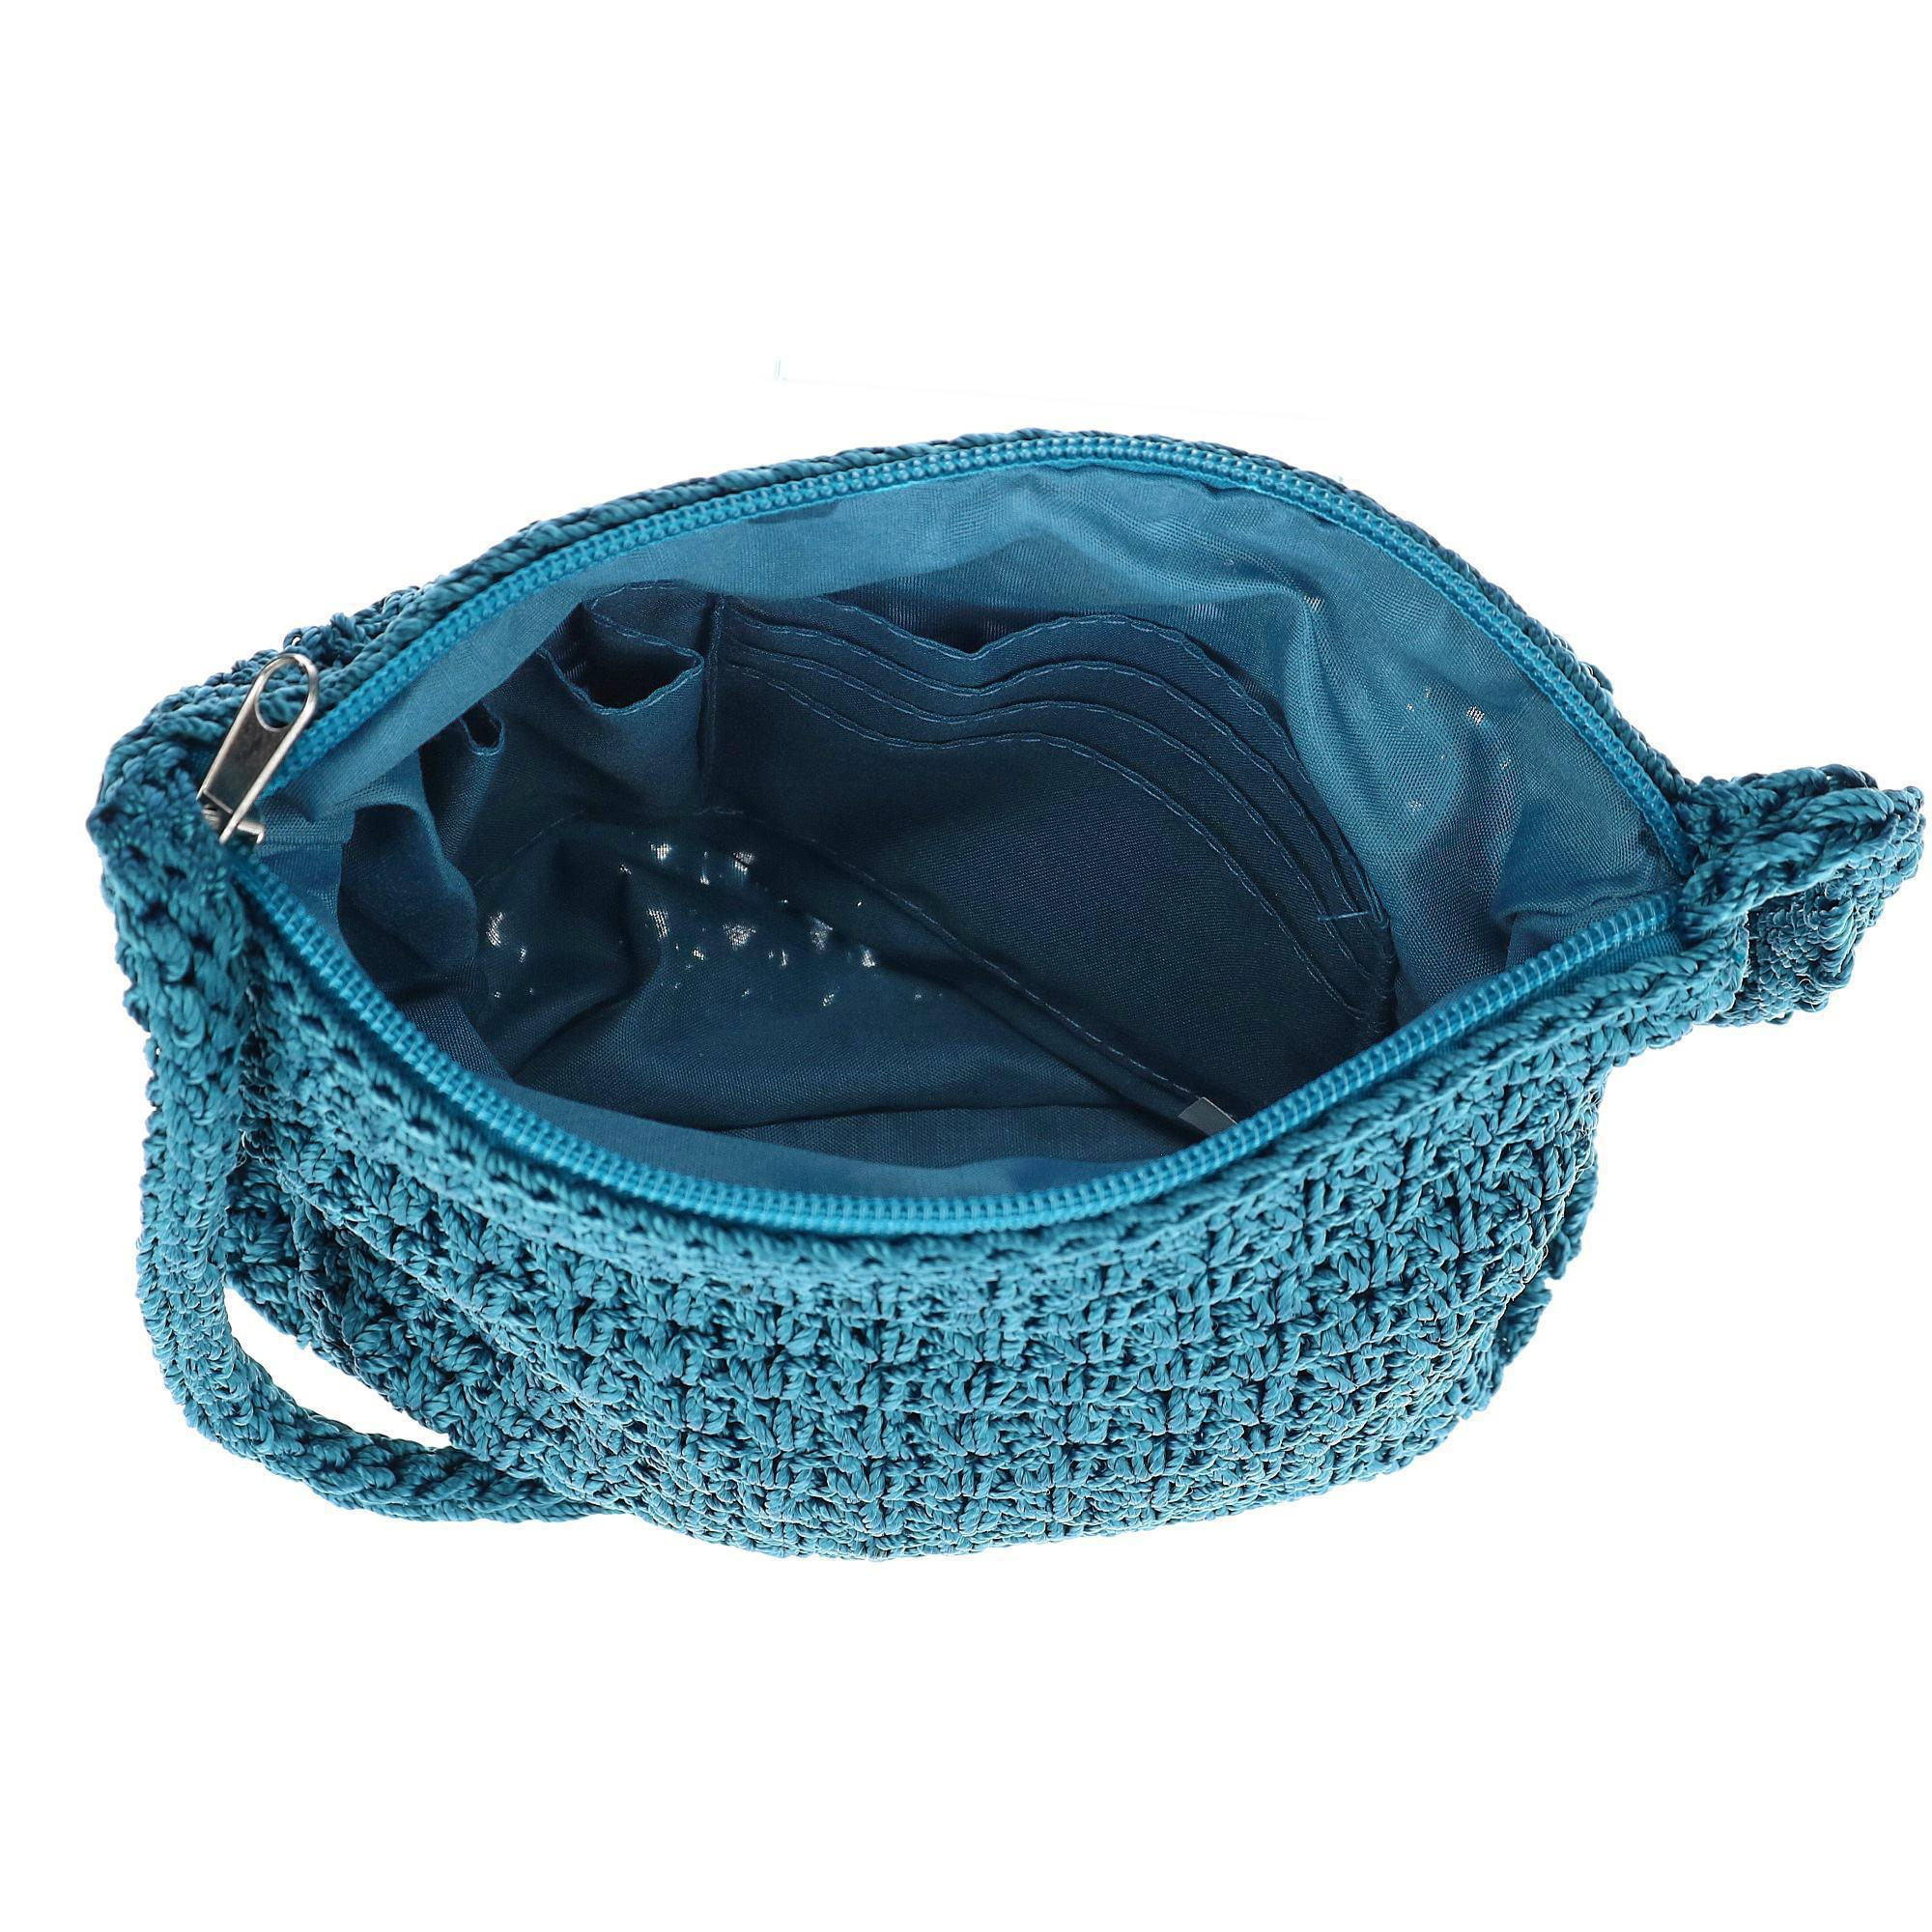 New-CTM-Women-039-s-Crochet-Crossbody-Handbag thumbnail 15